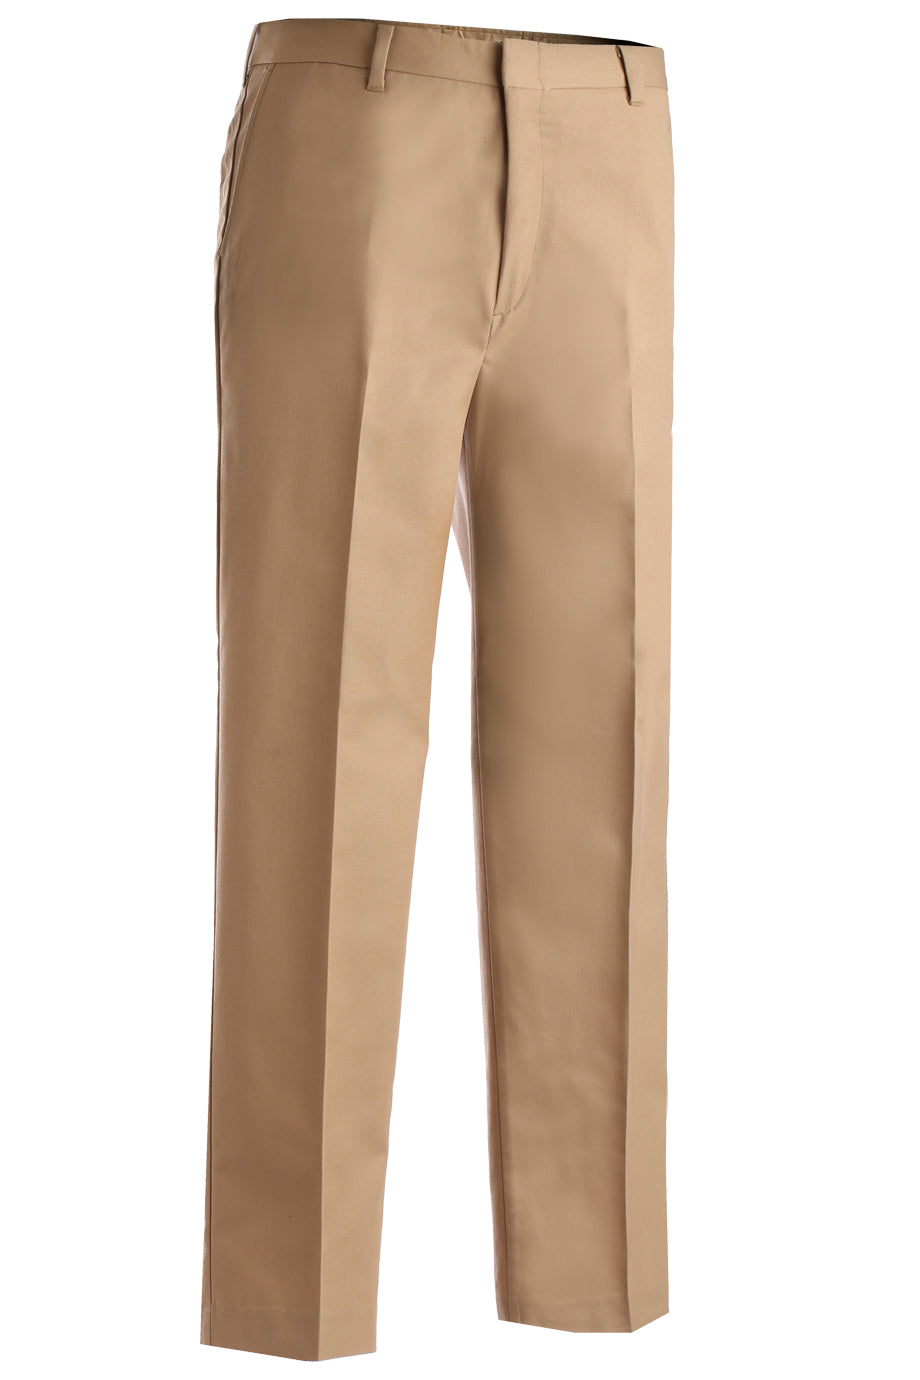 Khaki Edwards Mens Business Casual Flat Front Chino Pant - Khaki